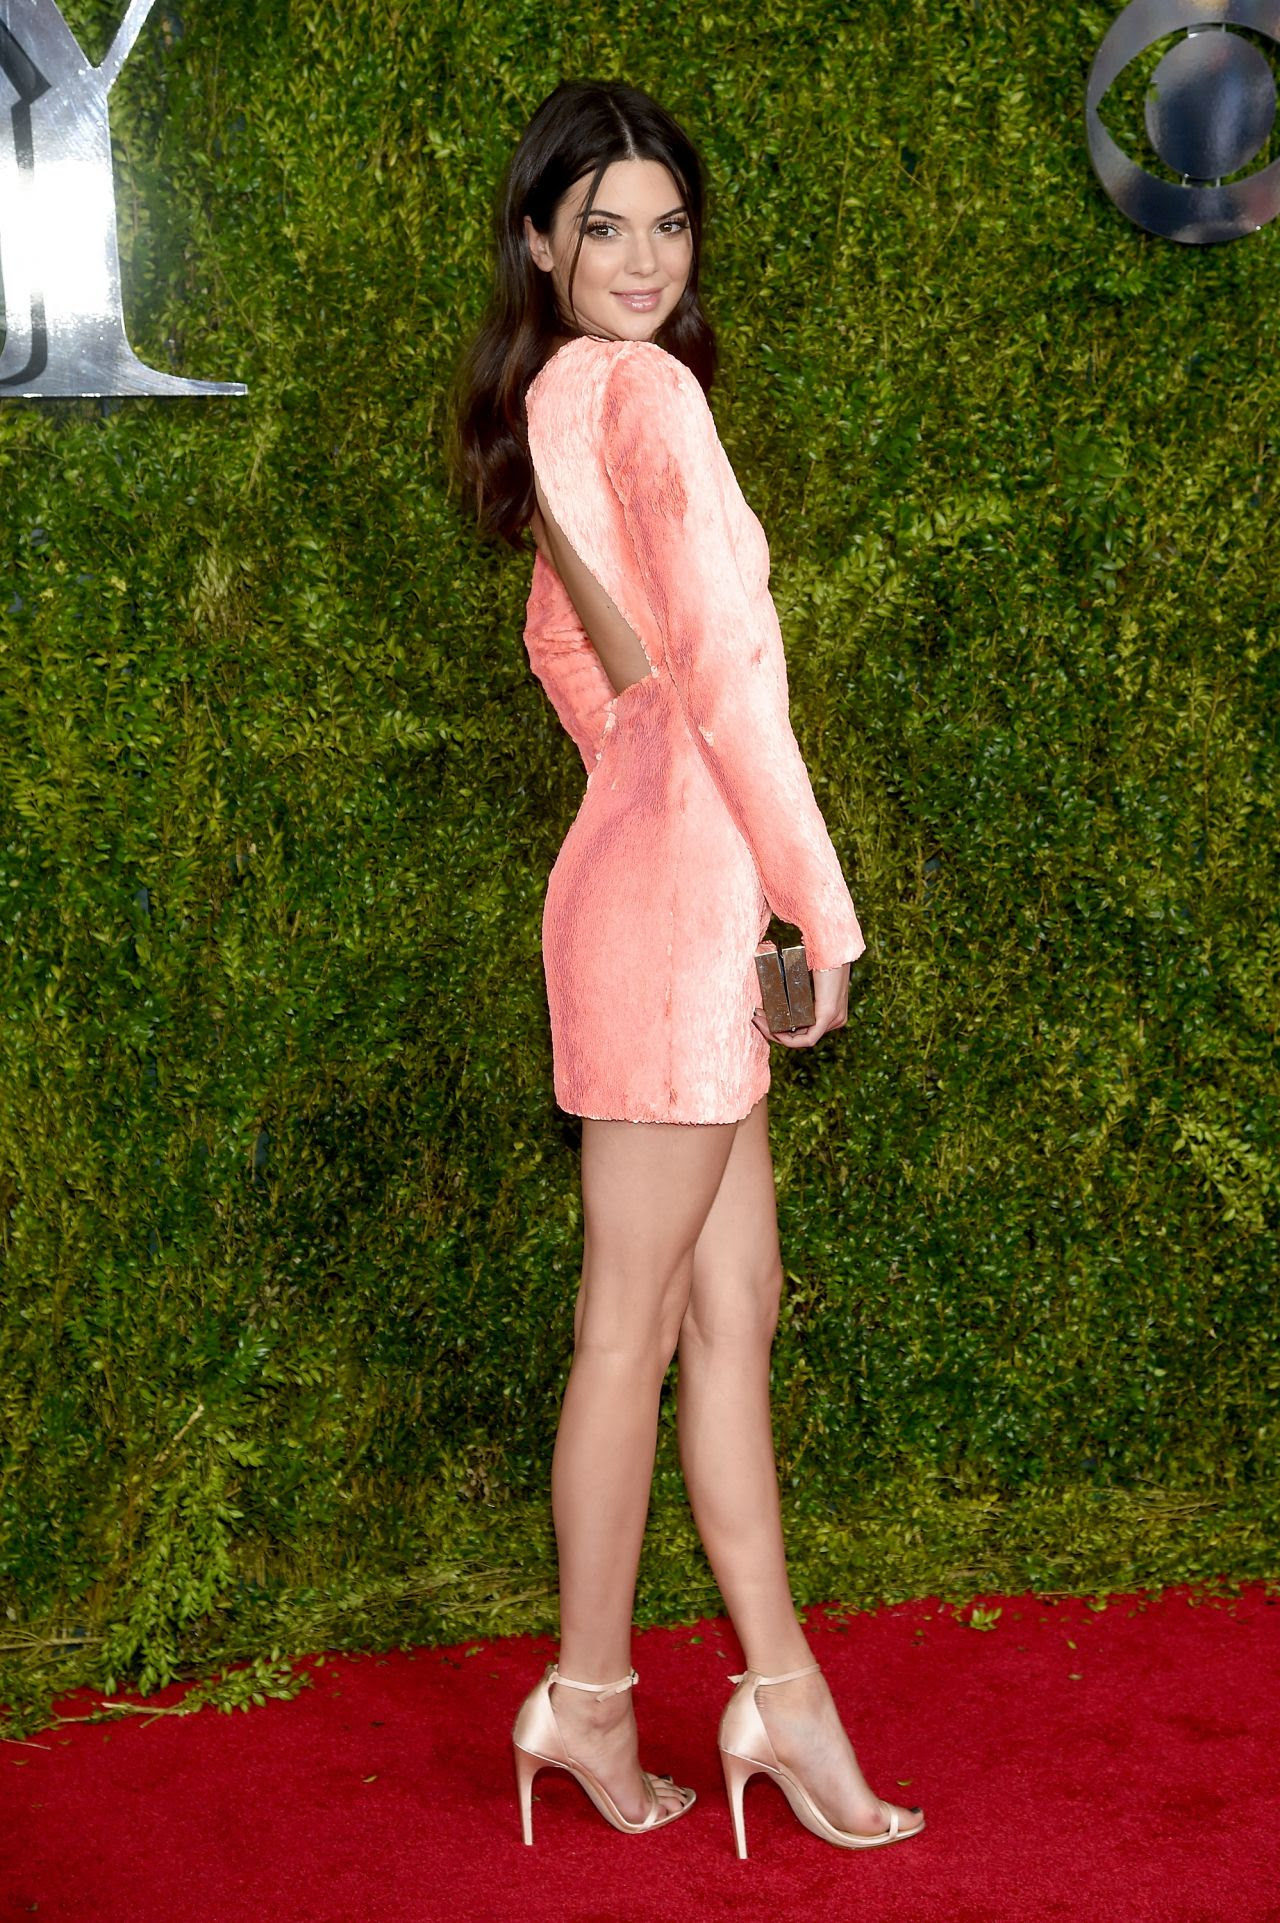 http://fashionsizzle.com/wp-content/uploads/2015/06/kendall-jenner-2015-tony-awards-in-new-york-city_11.jpg